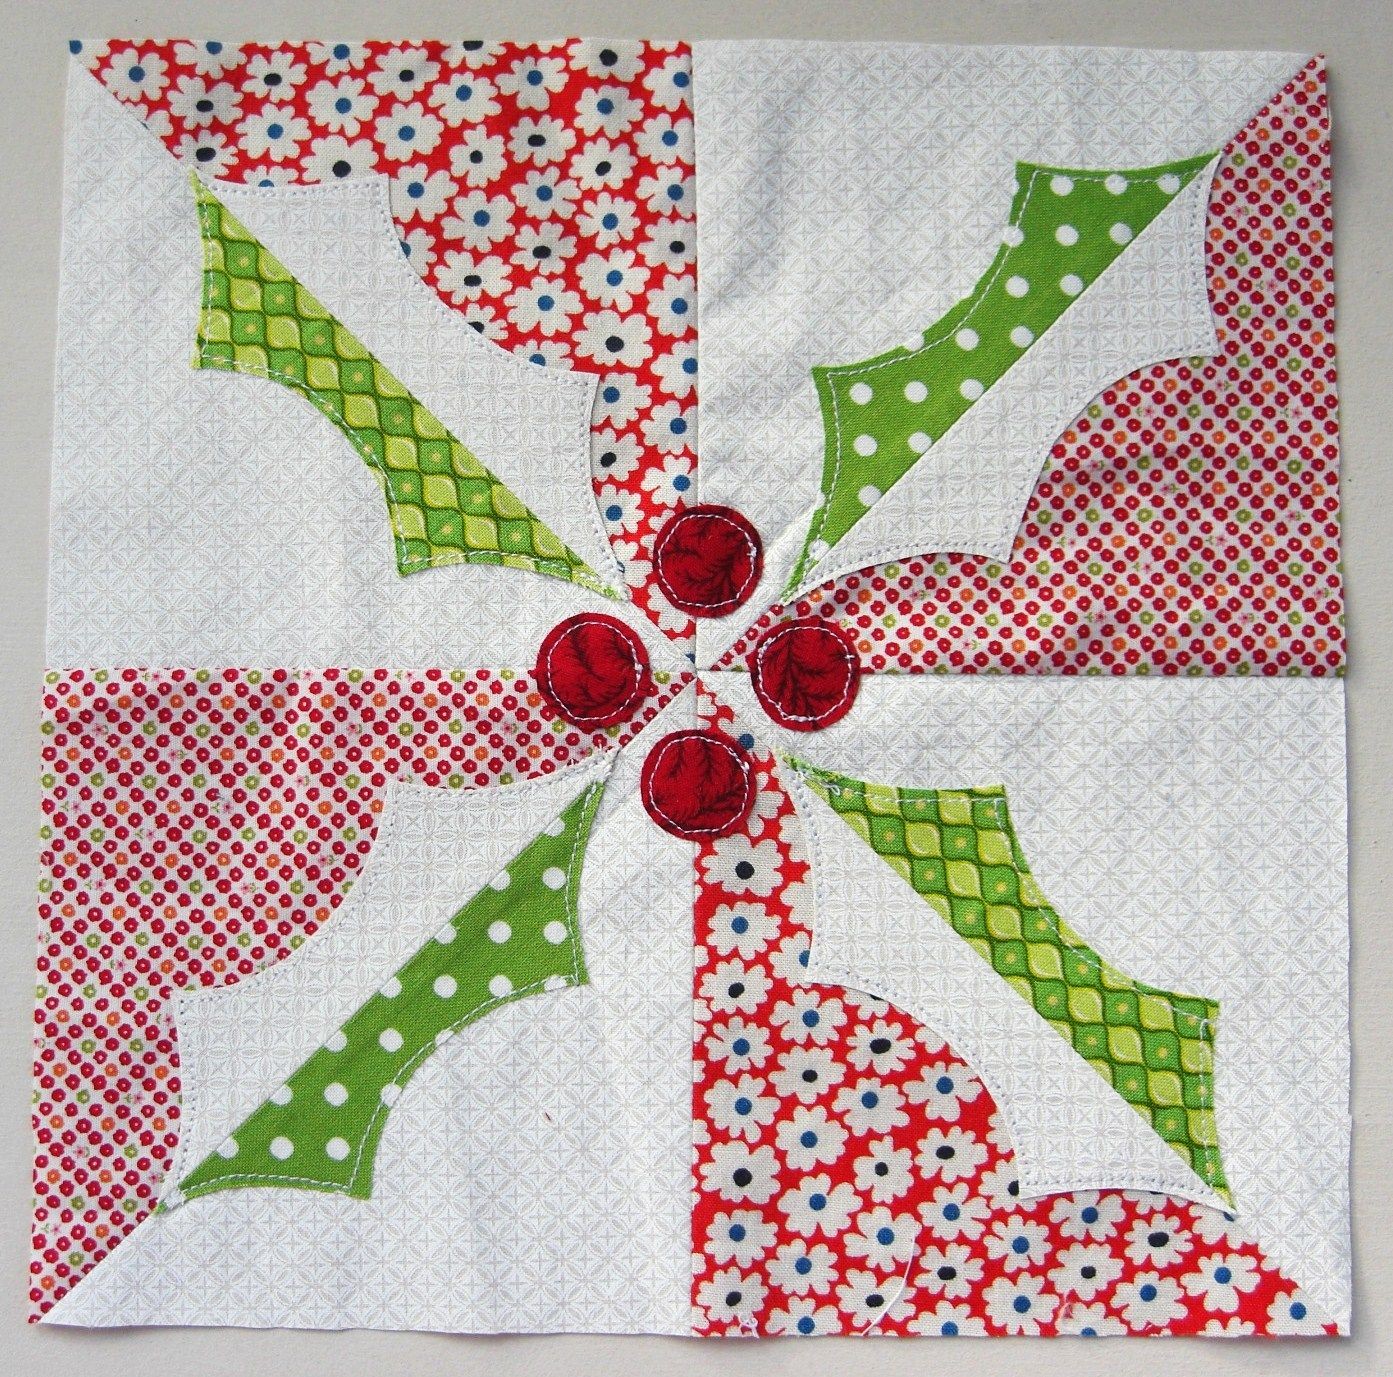 holly quilt block, free pattern & templates from the flossy blossy blog